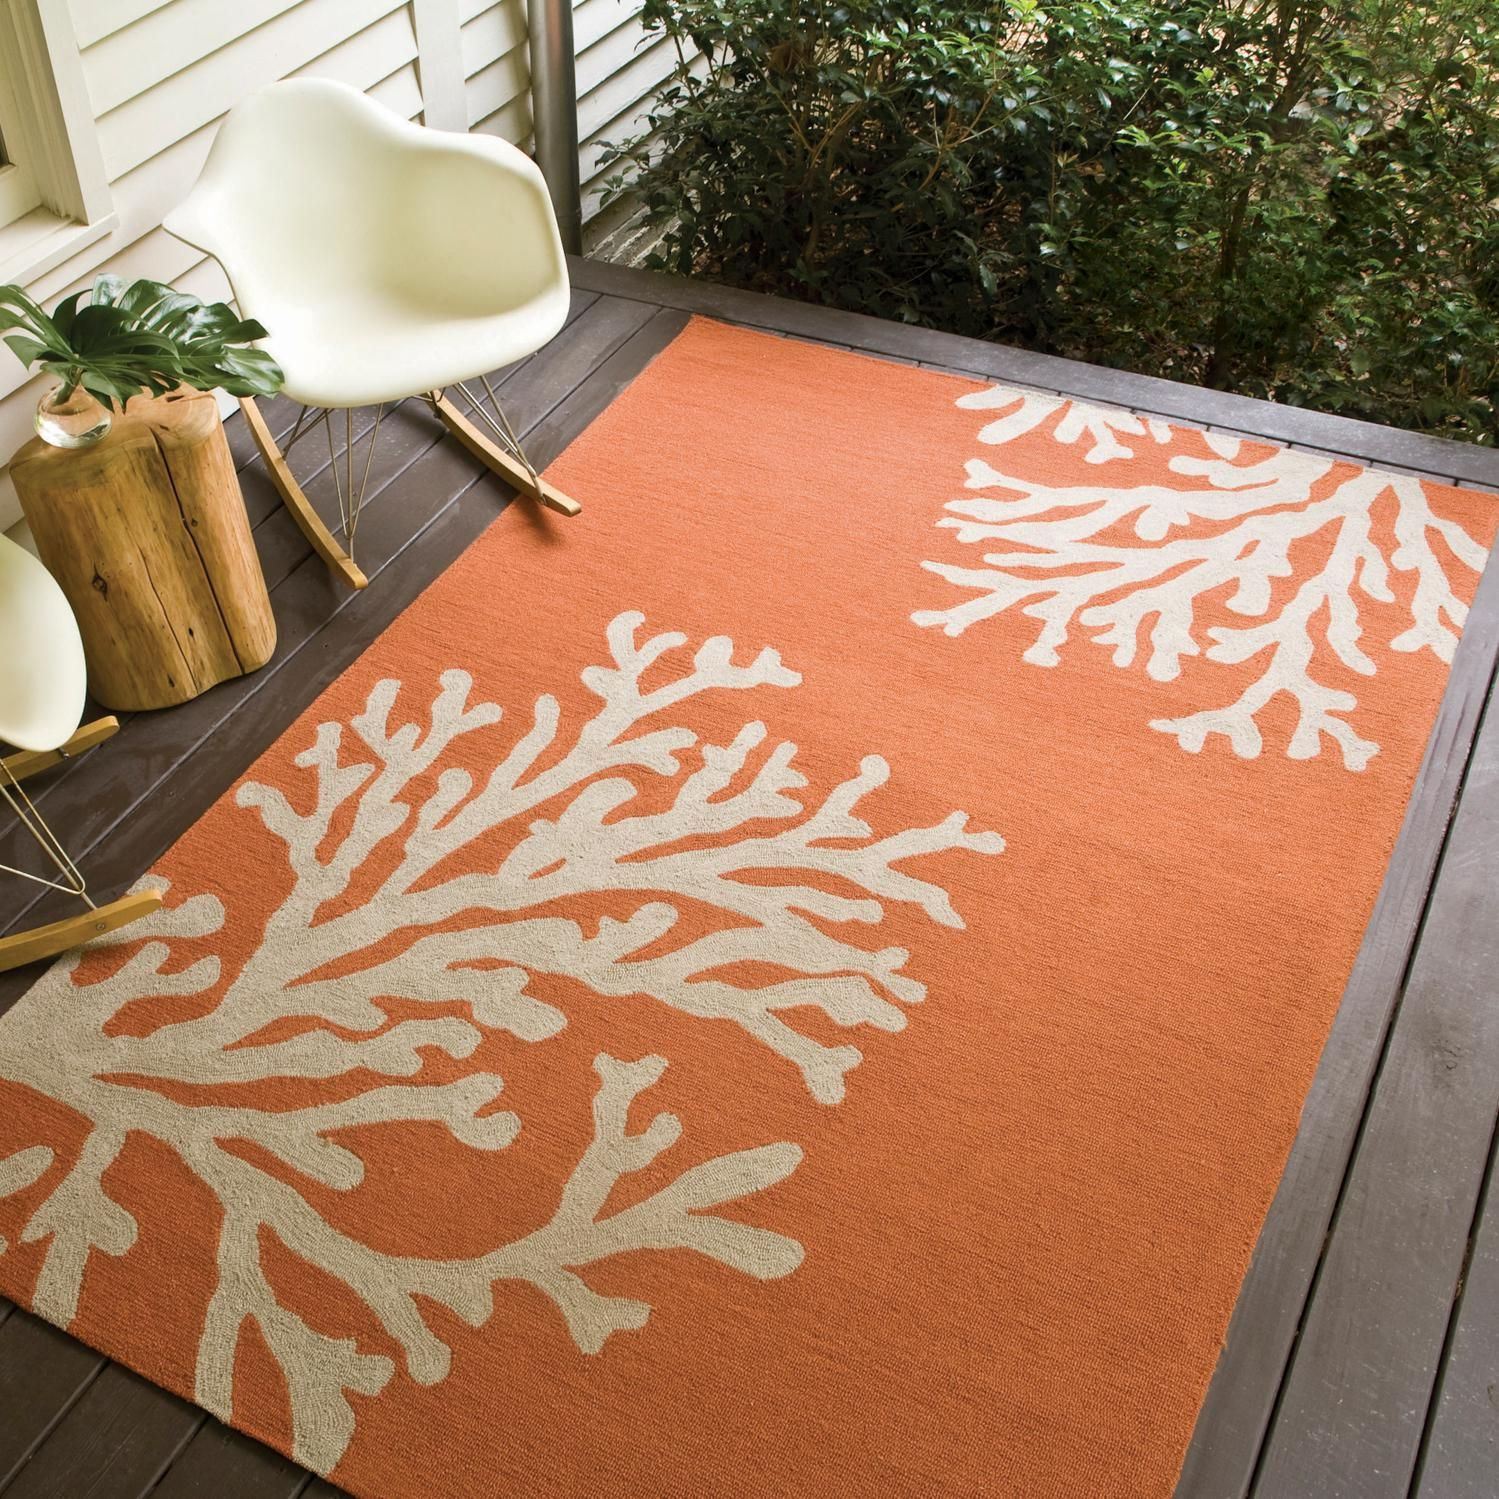 Indoor Outdoor Carpet S - Beste Awesome Inspiration